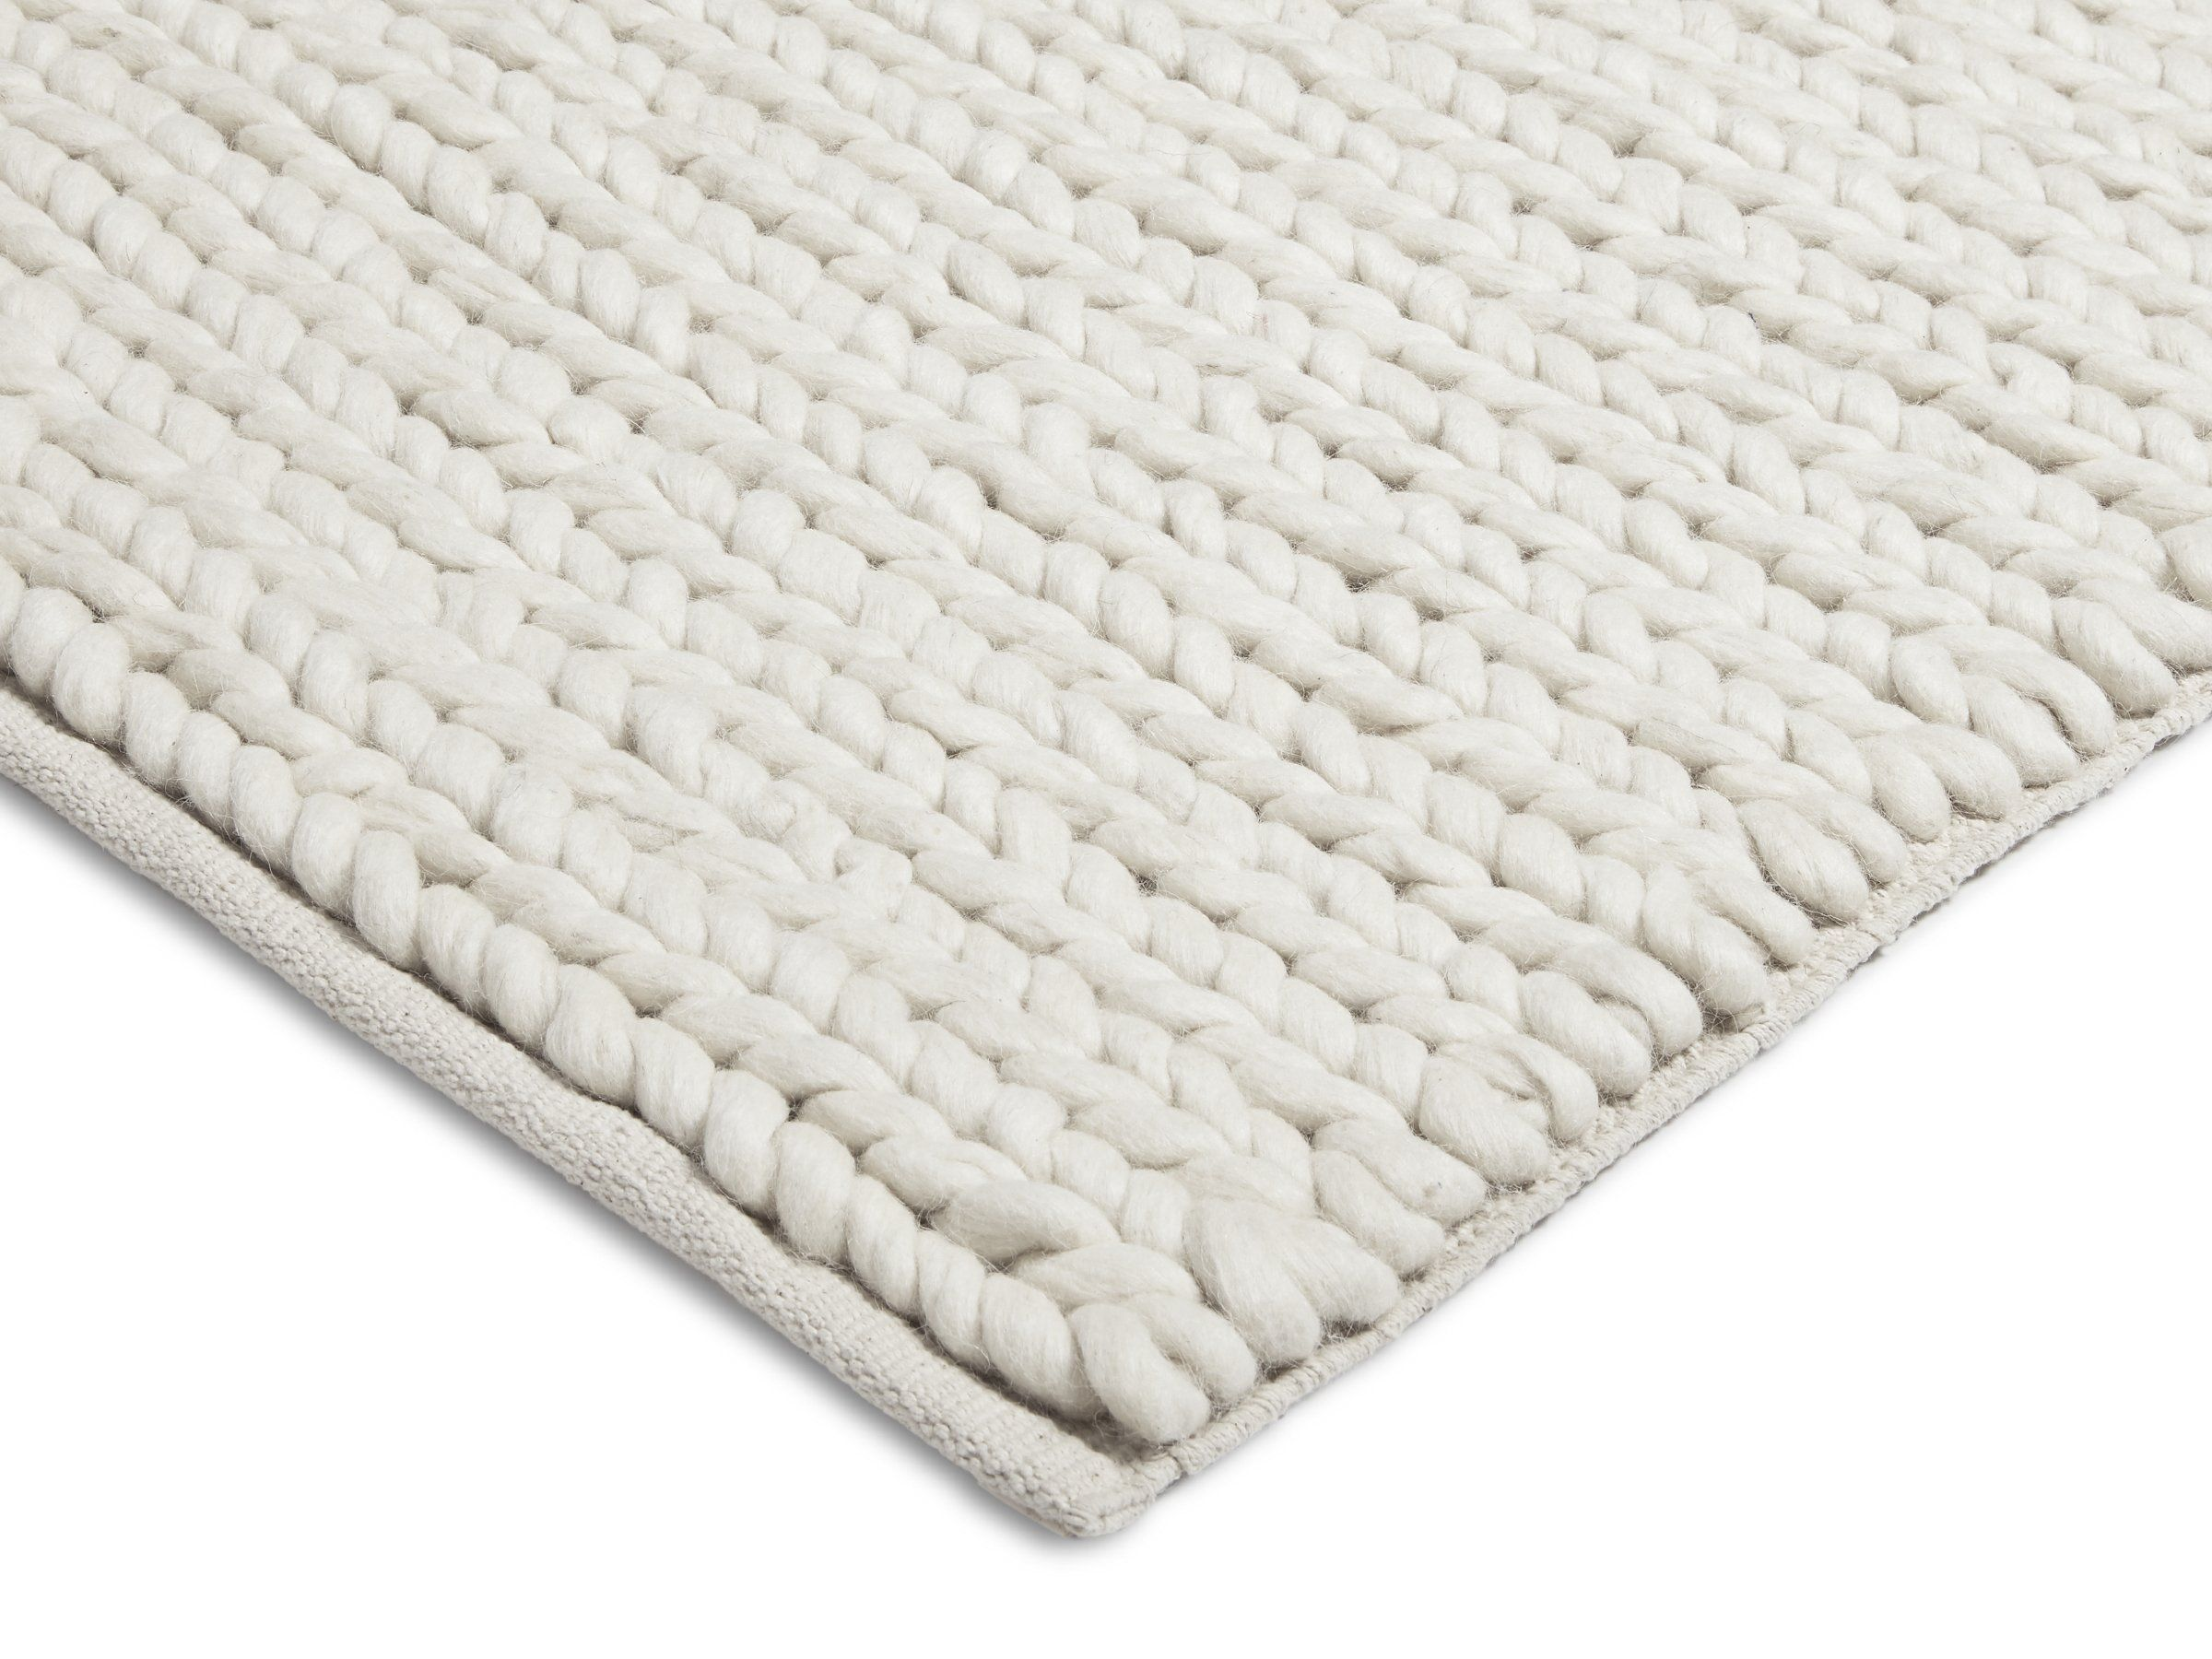 Parachute Home Braided Wool Rug 8x10 Ivory Products In